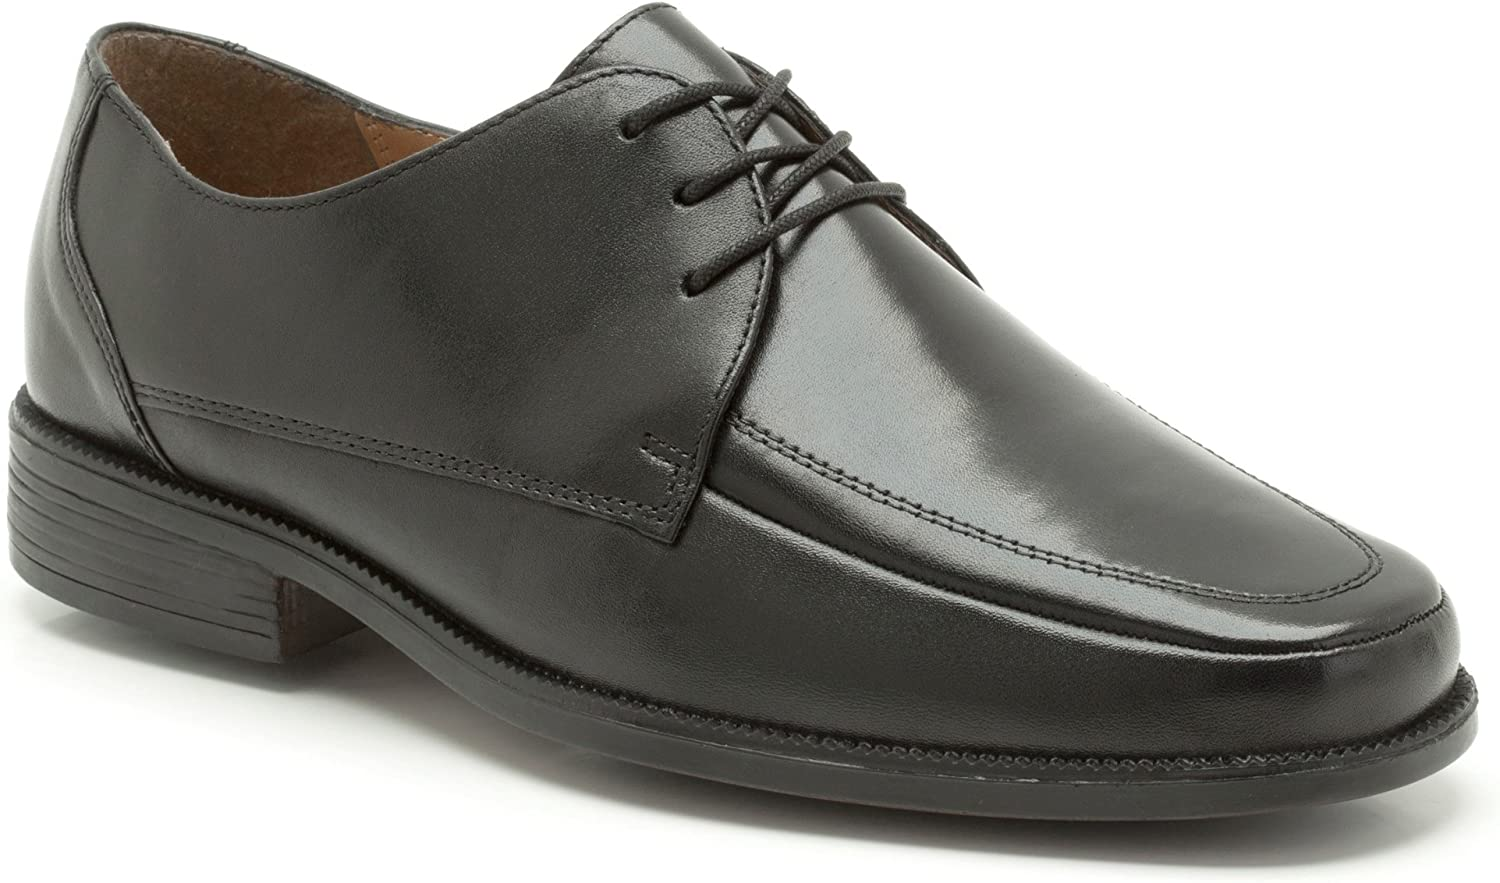 Mens Clarks Formal Extra Wide Lace Up shoes Astute Style